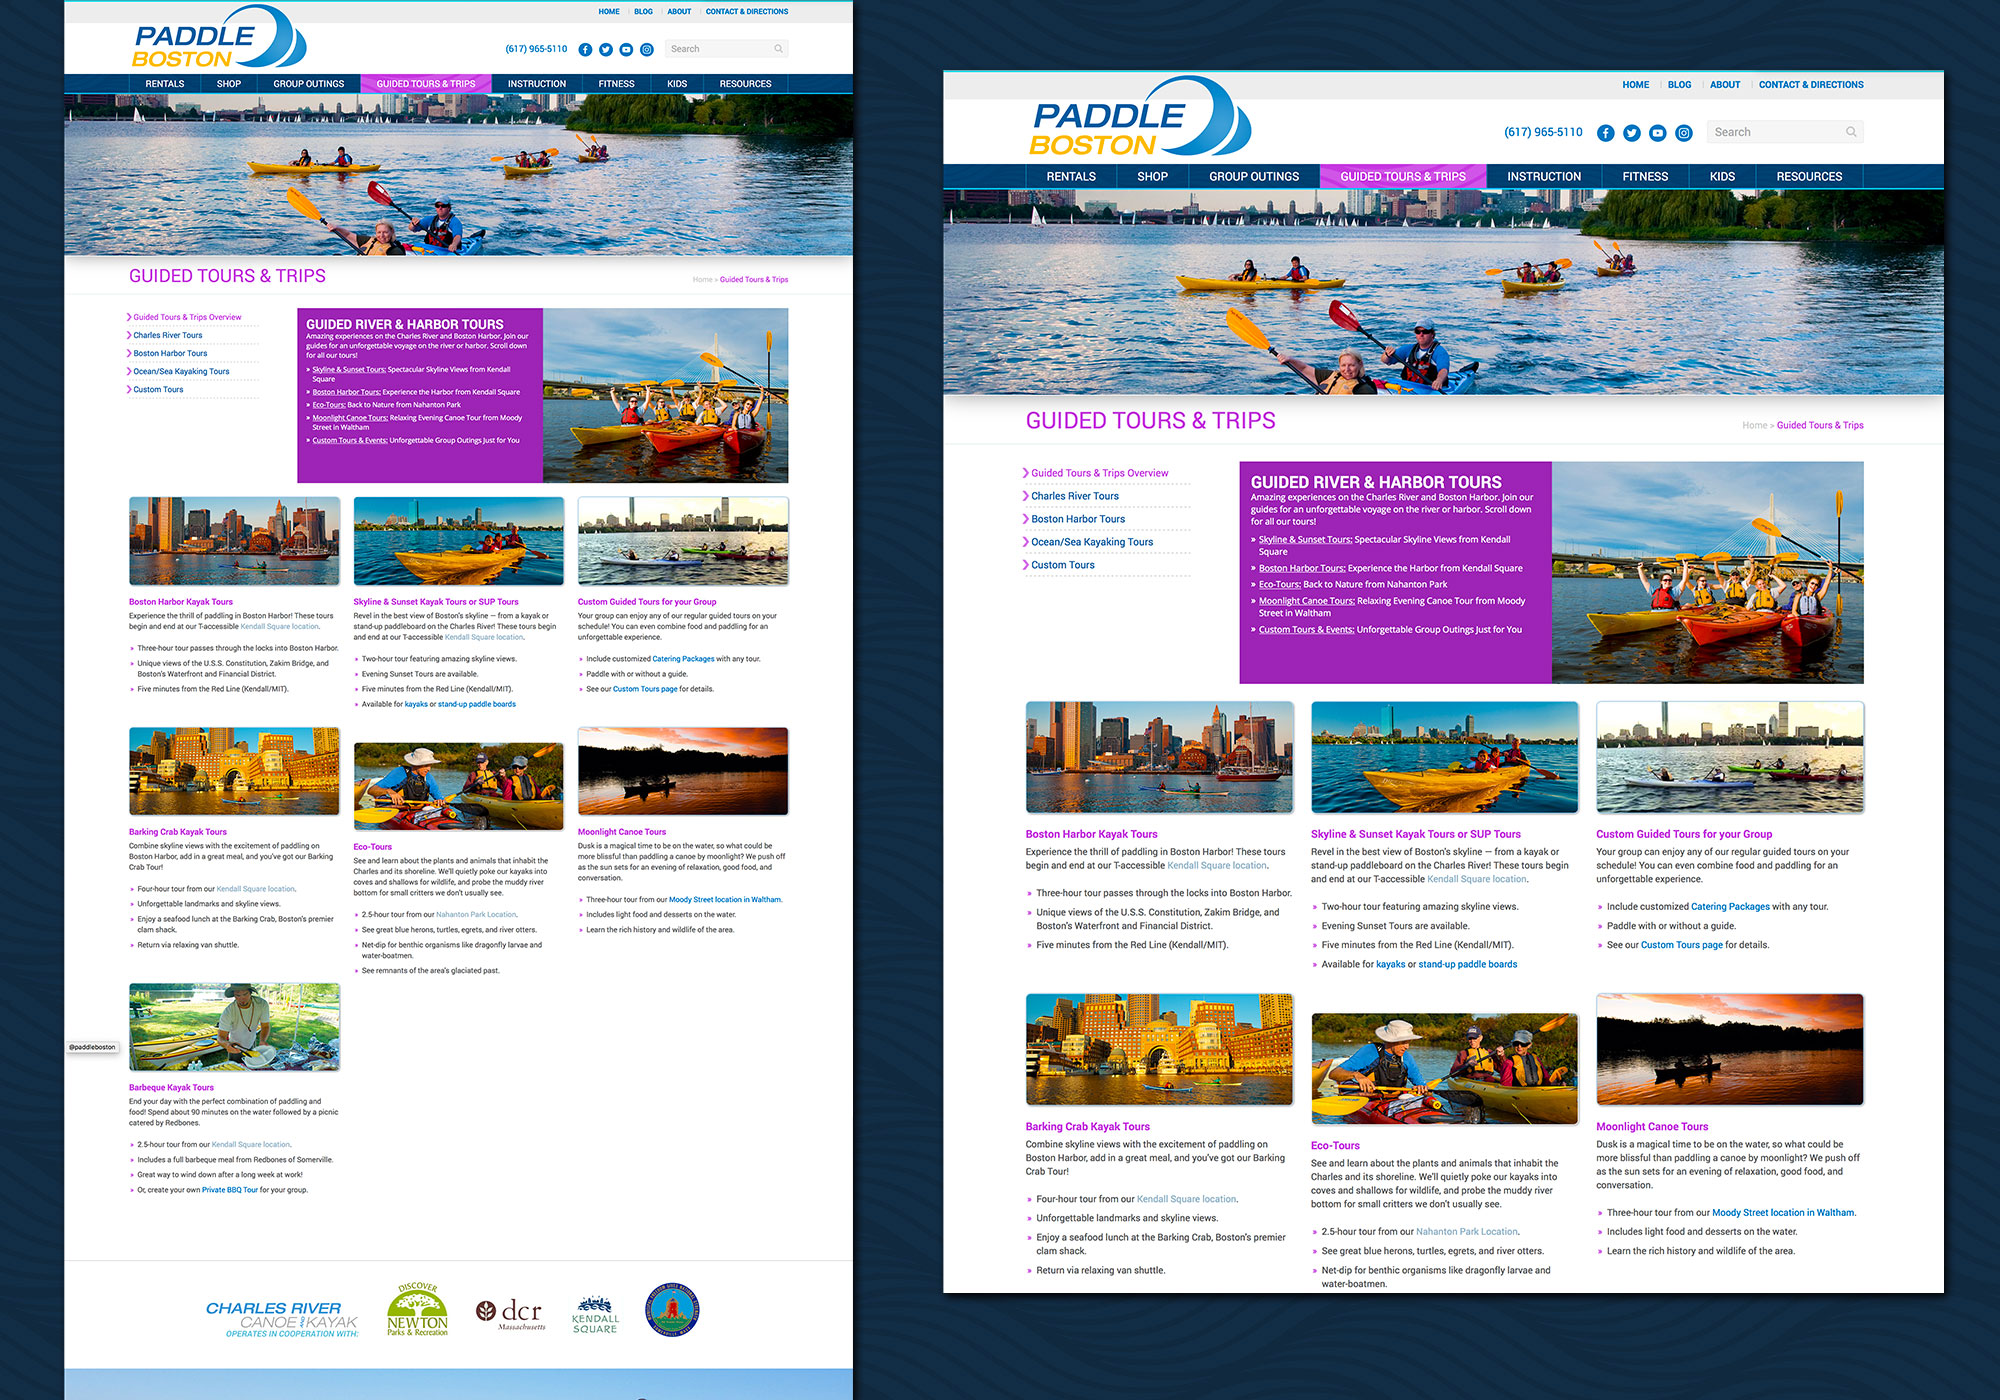 Guided Tours section has a specific color scheme in this custom wordpress website design for Paddle Boston by Portland, Maine website design company, SlickFish Studios.